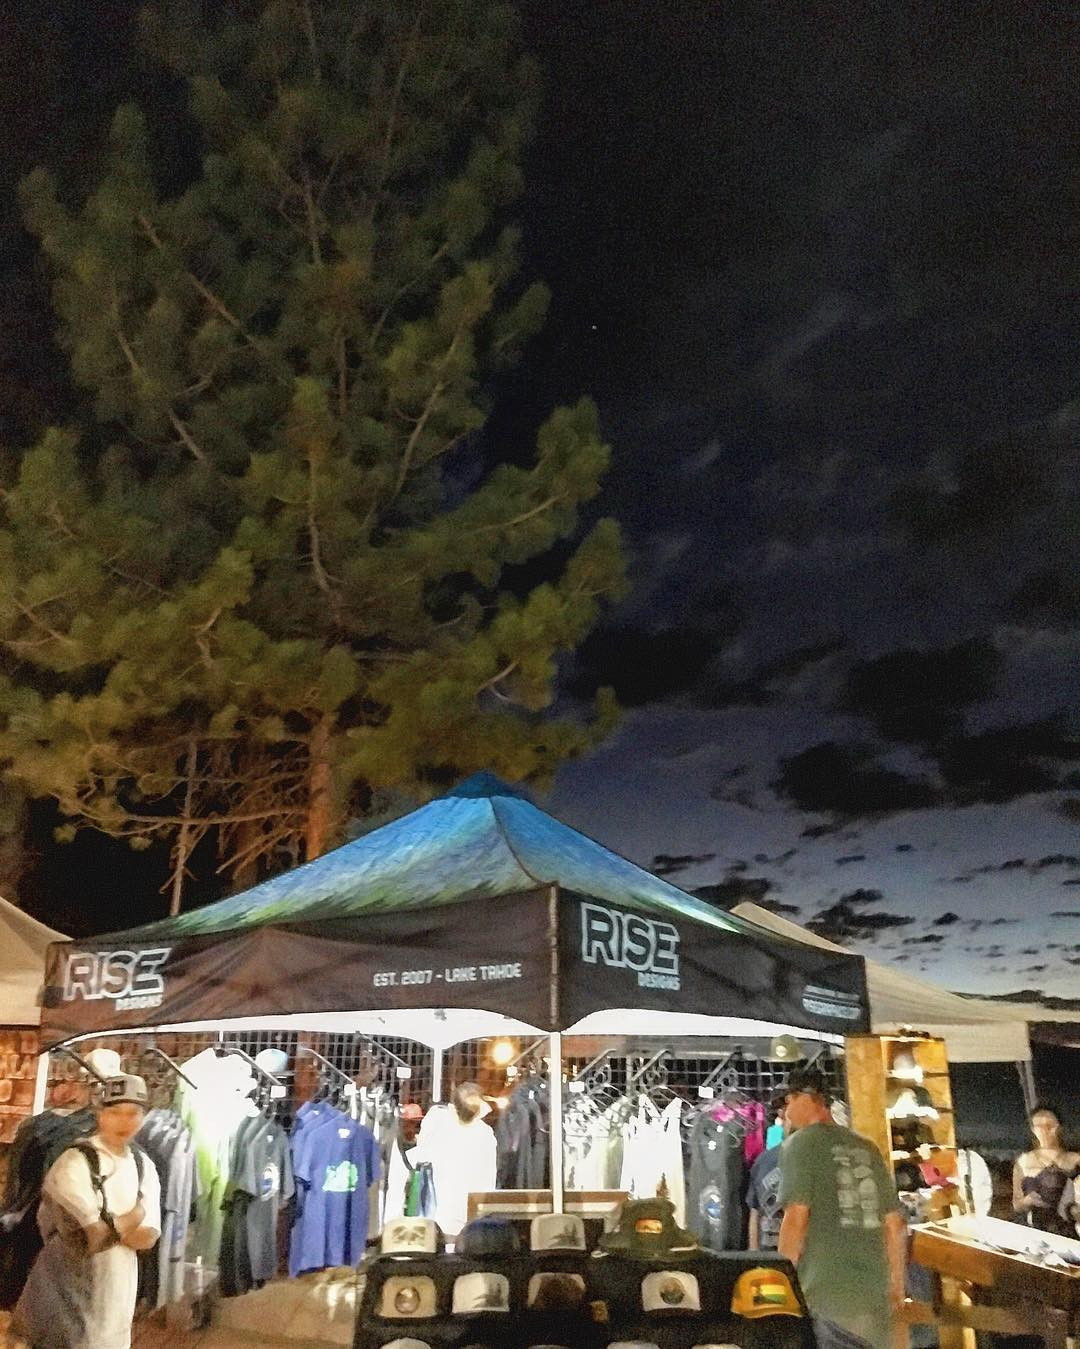 Last night at @liveatlakeview . The sky was something else. Night shot. See you next week @meyersmtb on Saturday. #risedesigns #inspiredbynature #clouds #chasingsunsets #tahoelife #tahoesnaps #trees